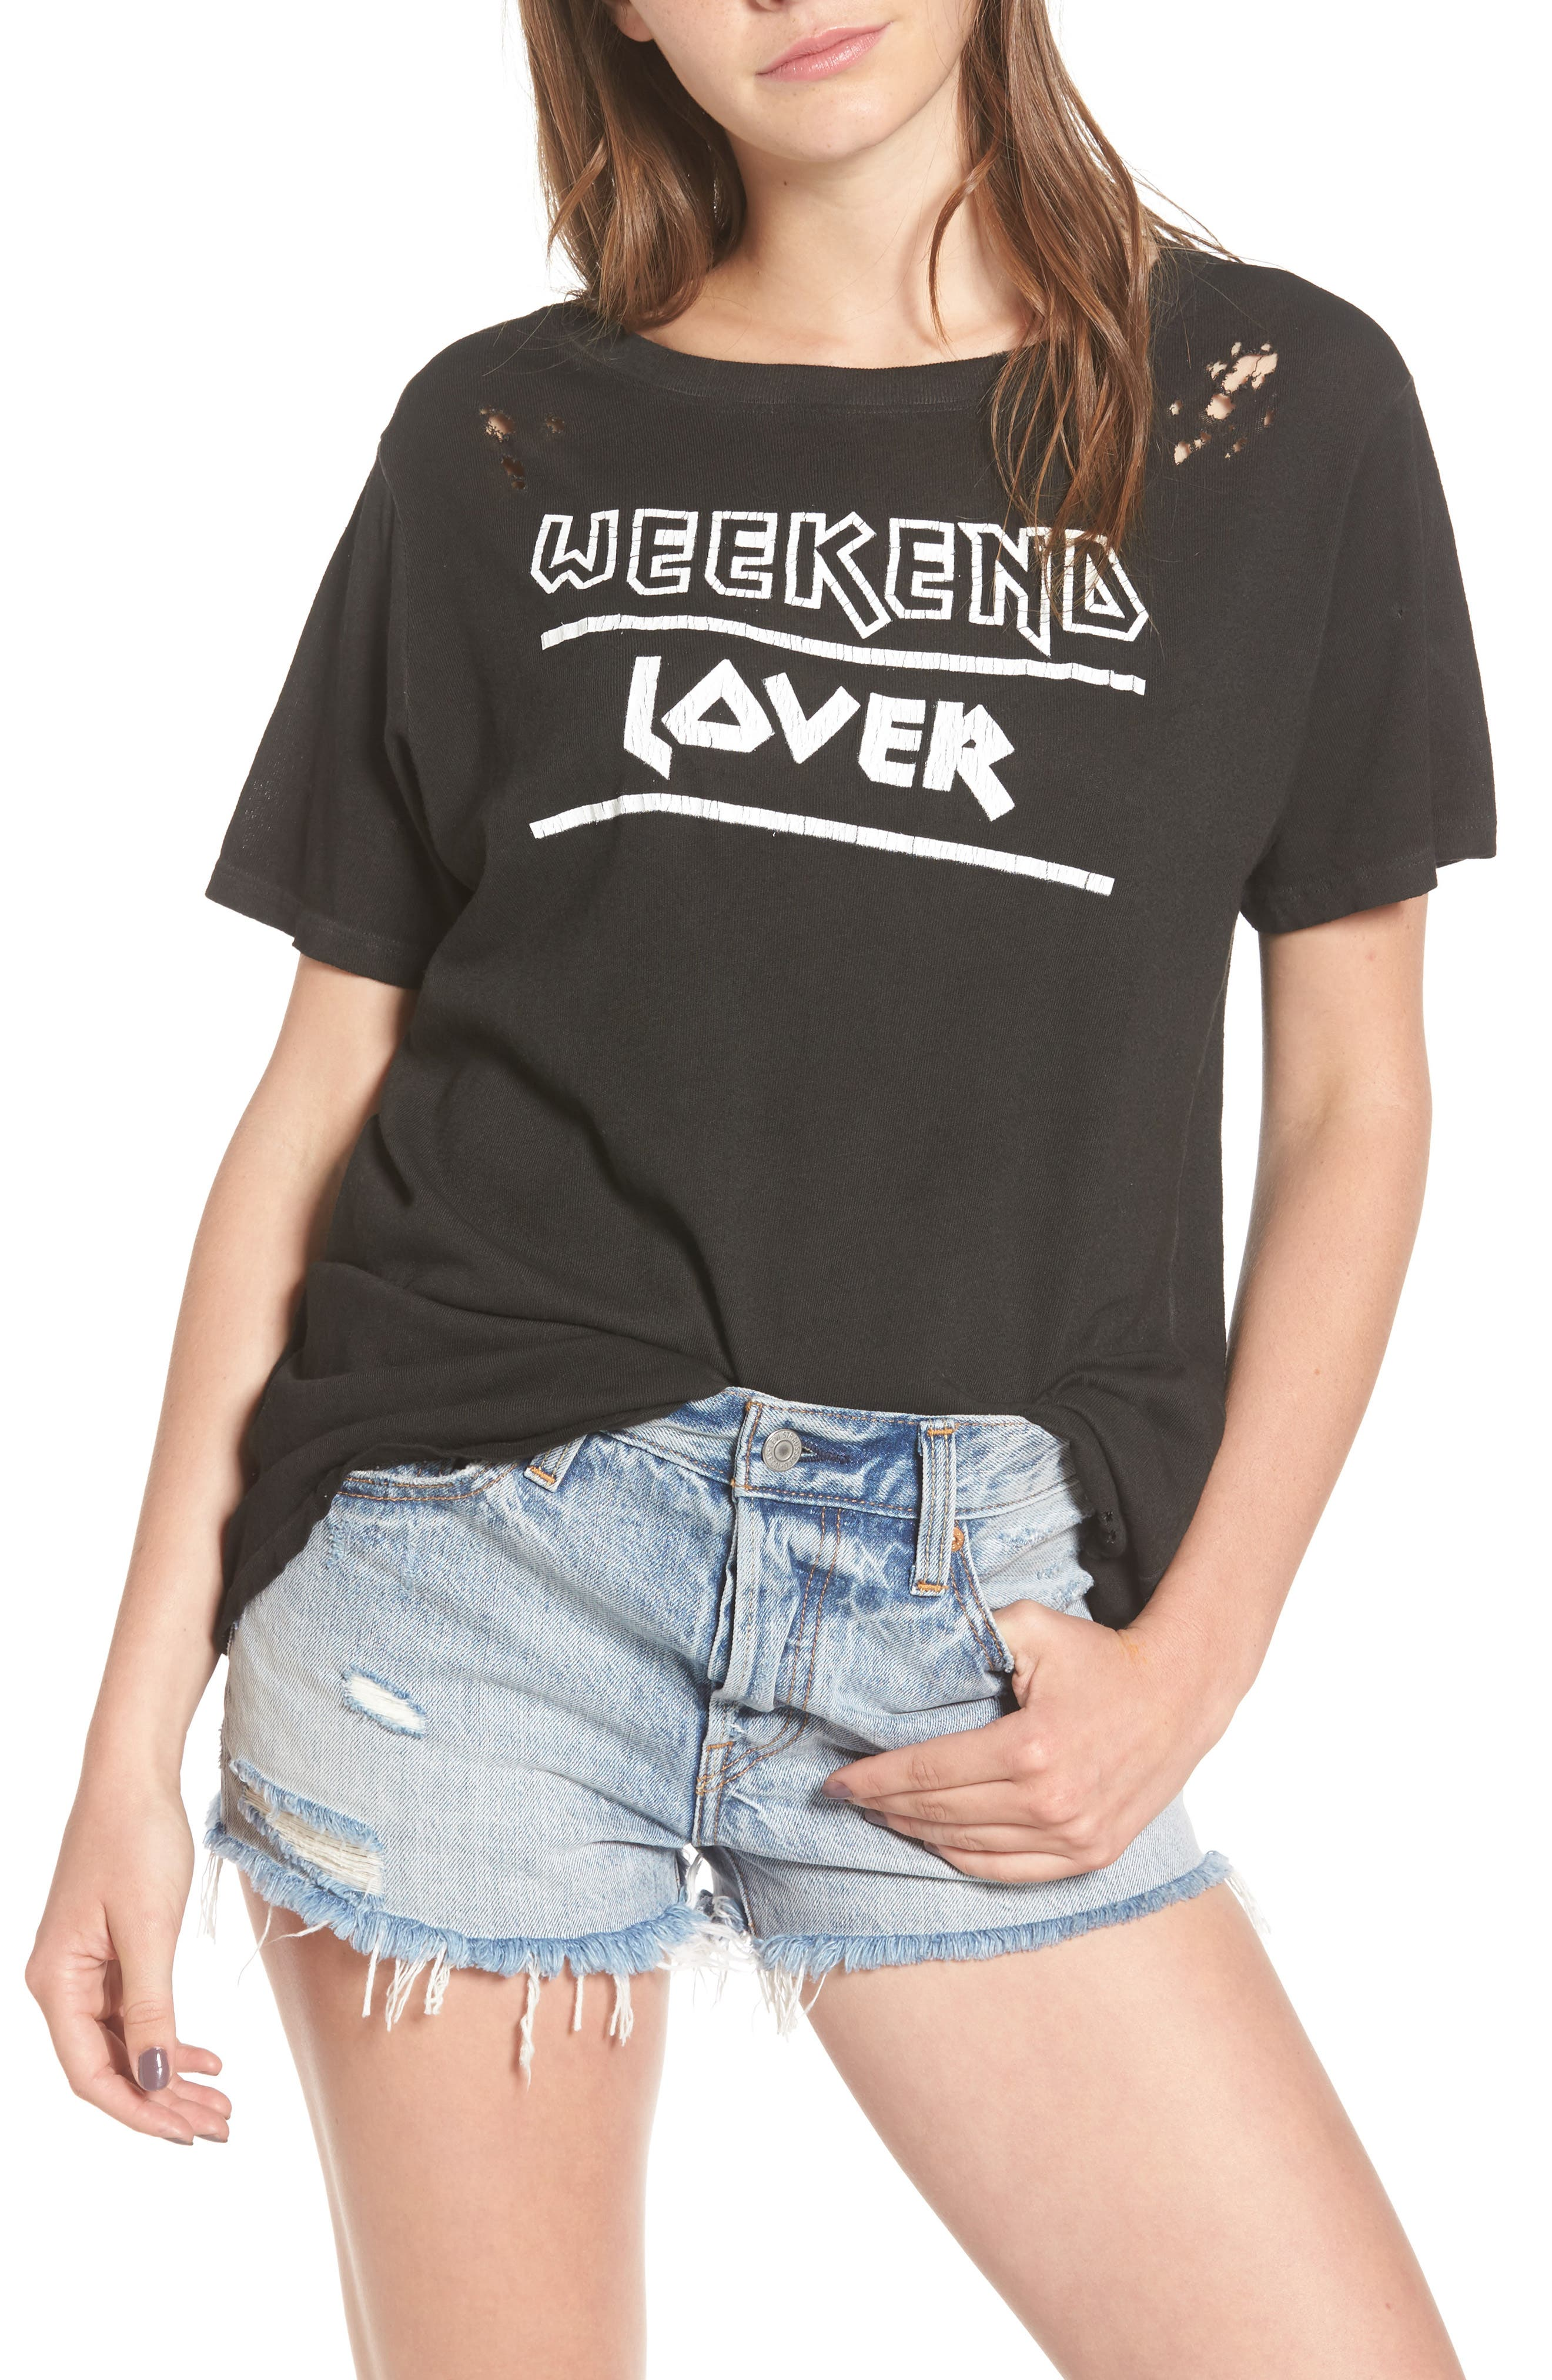 Alternate Image 1 Selected - Prince Peter Weekend Lover Distressed Tee